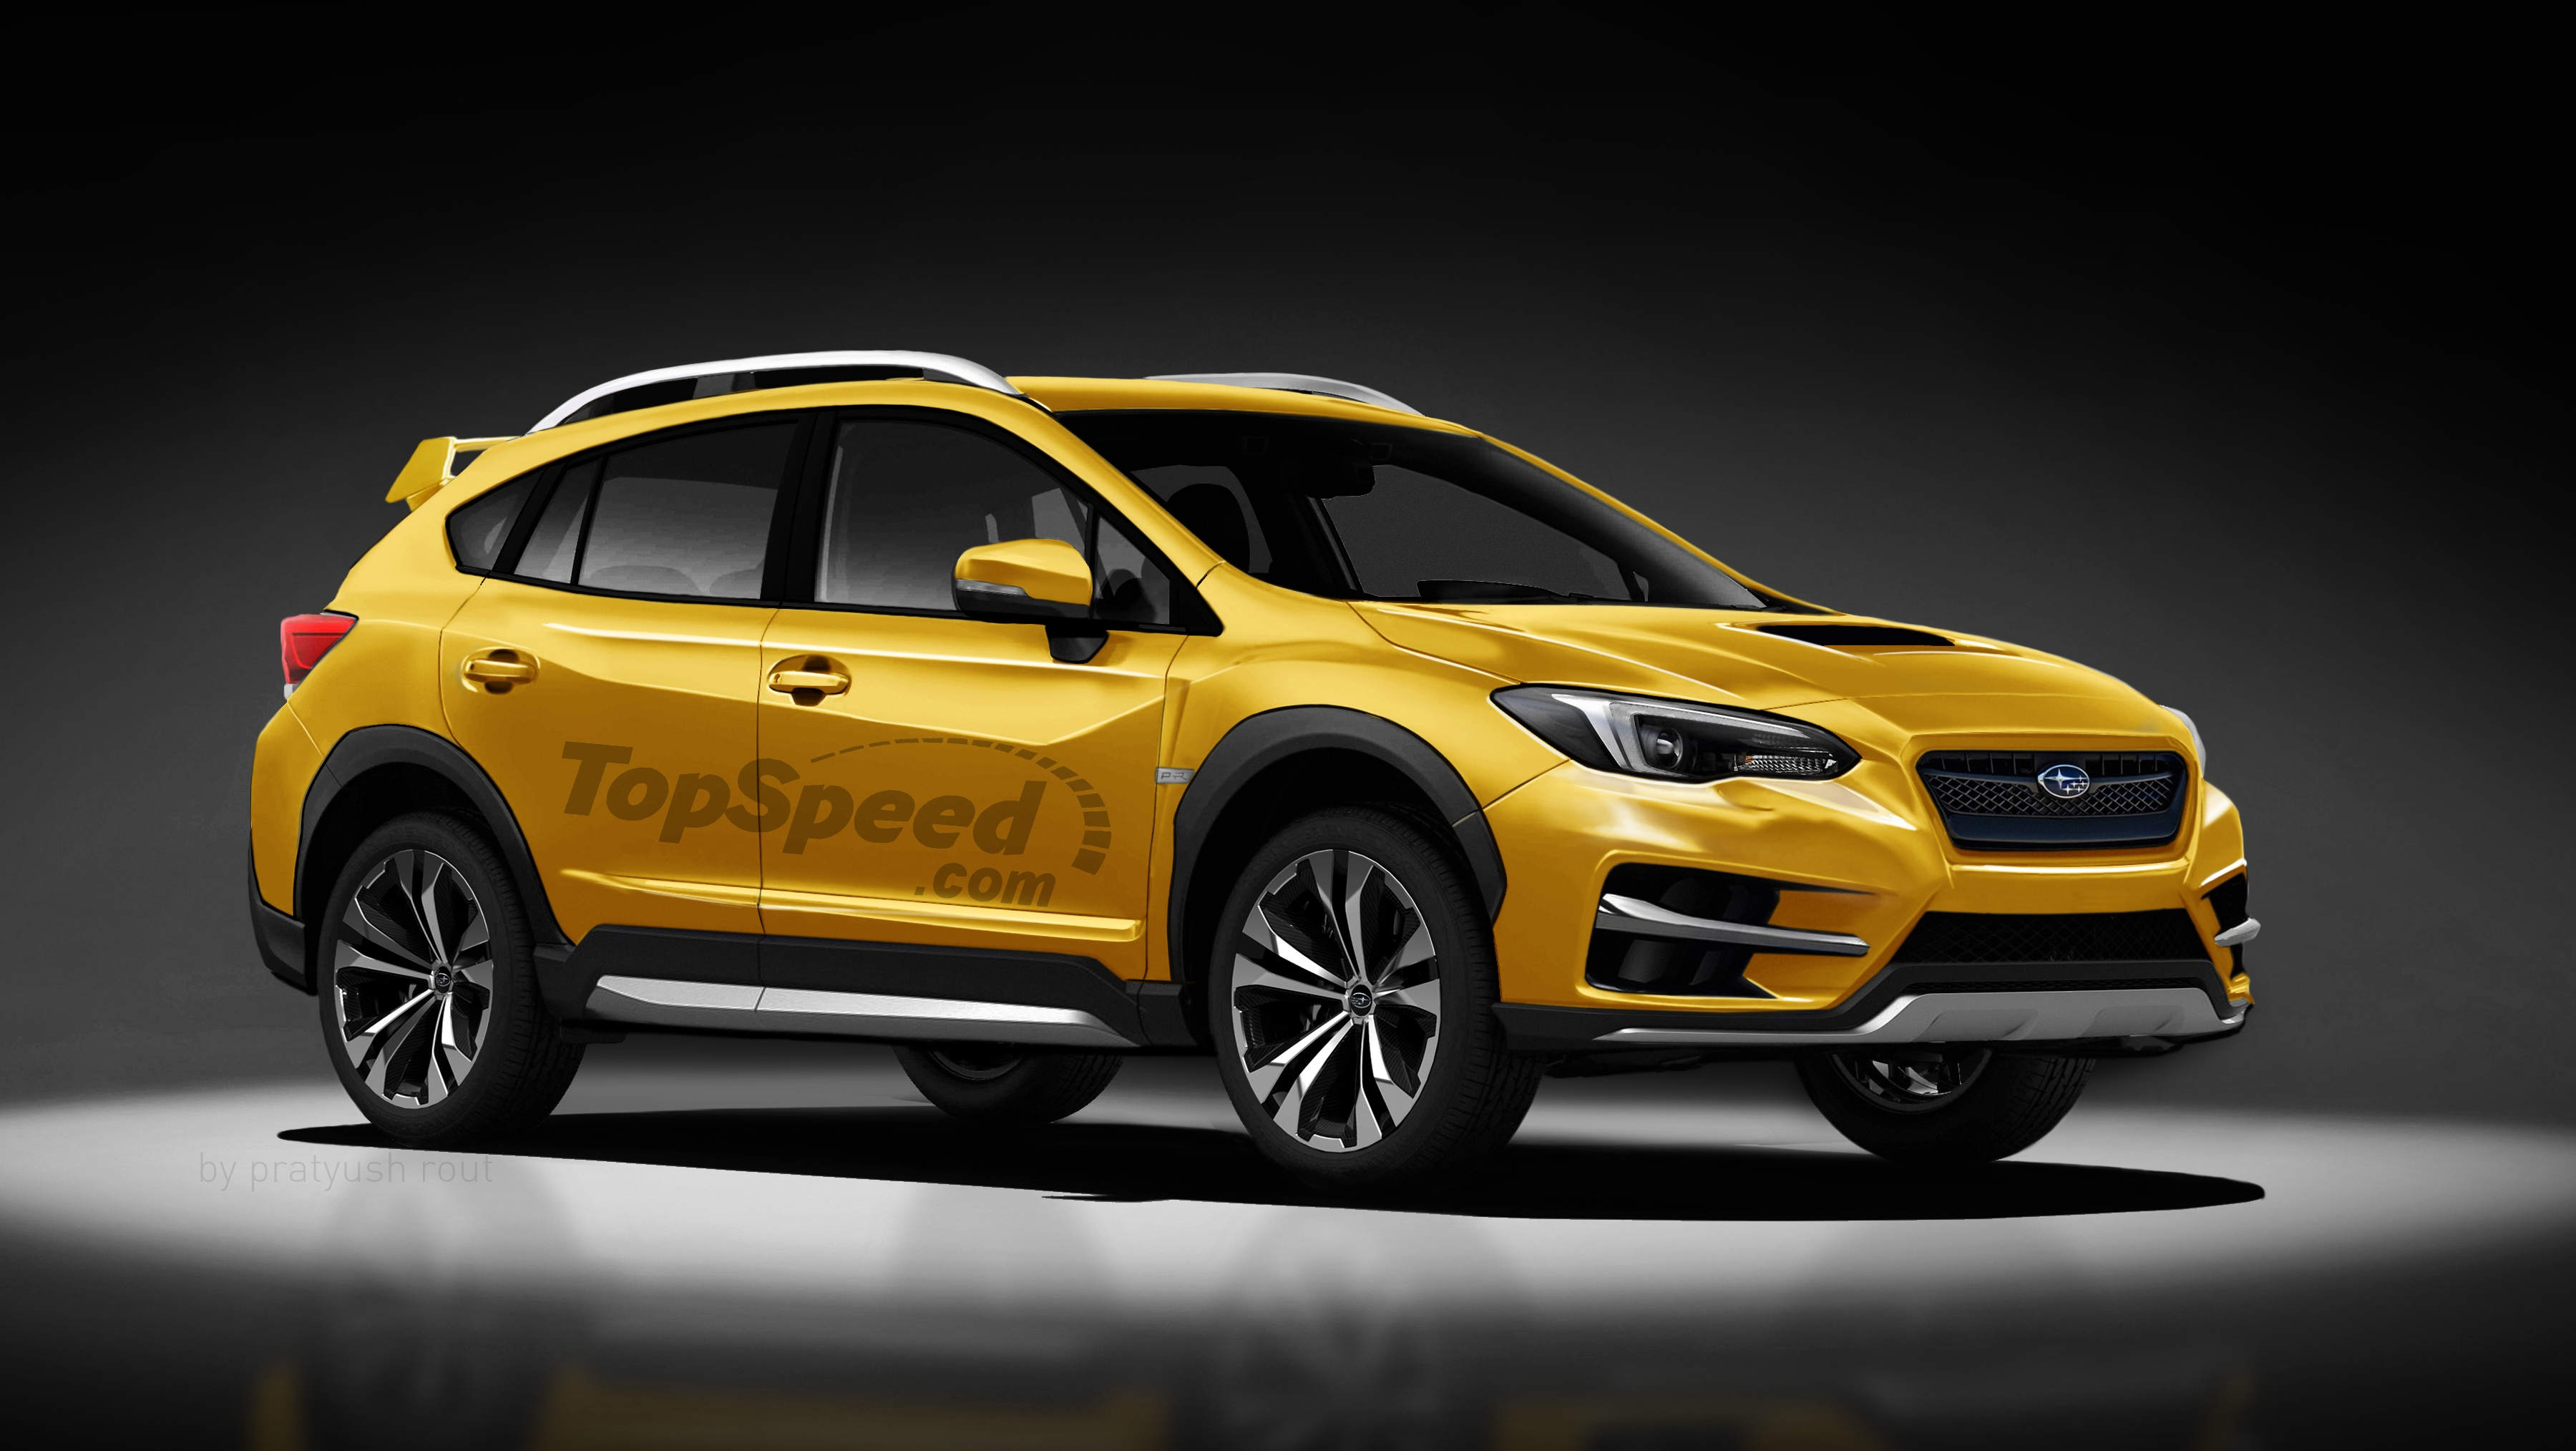 2020 Subaru Crosstrek XTI Pictures, Photos, Wallpapers ...